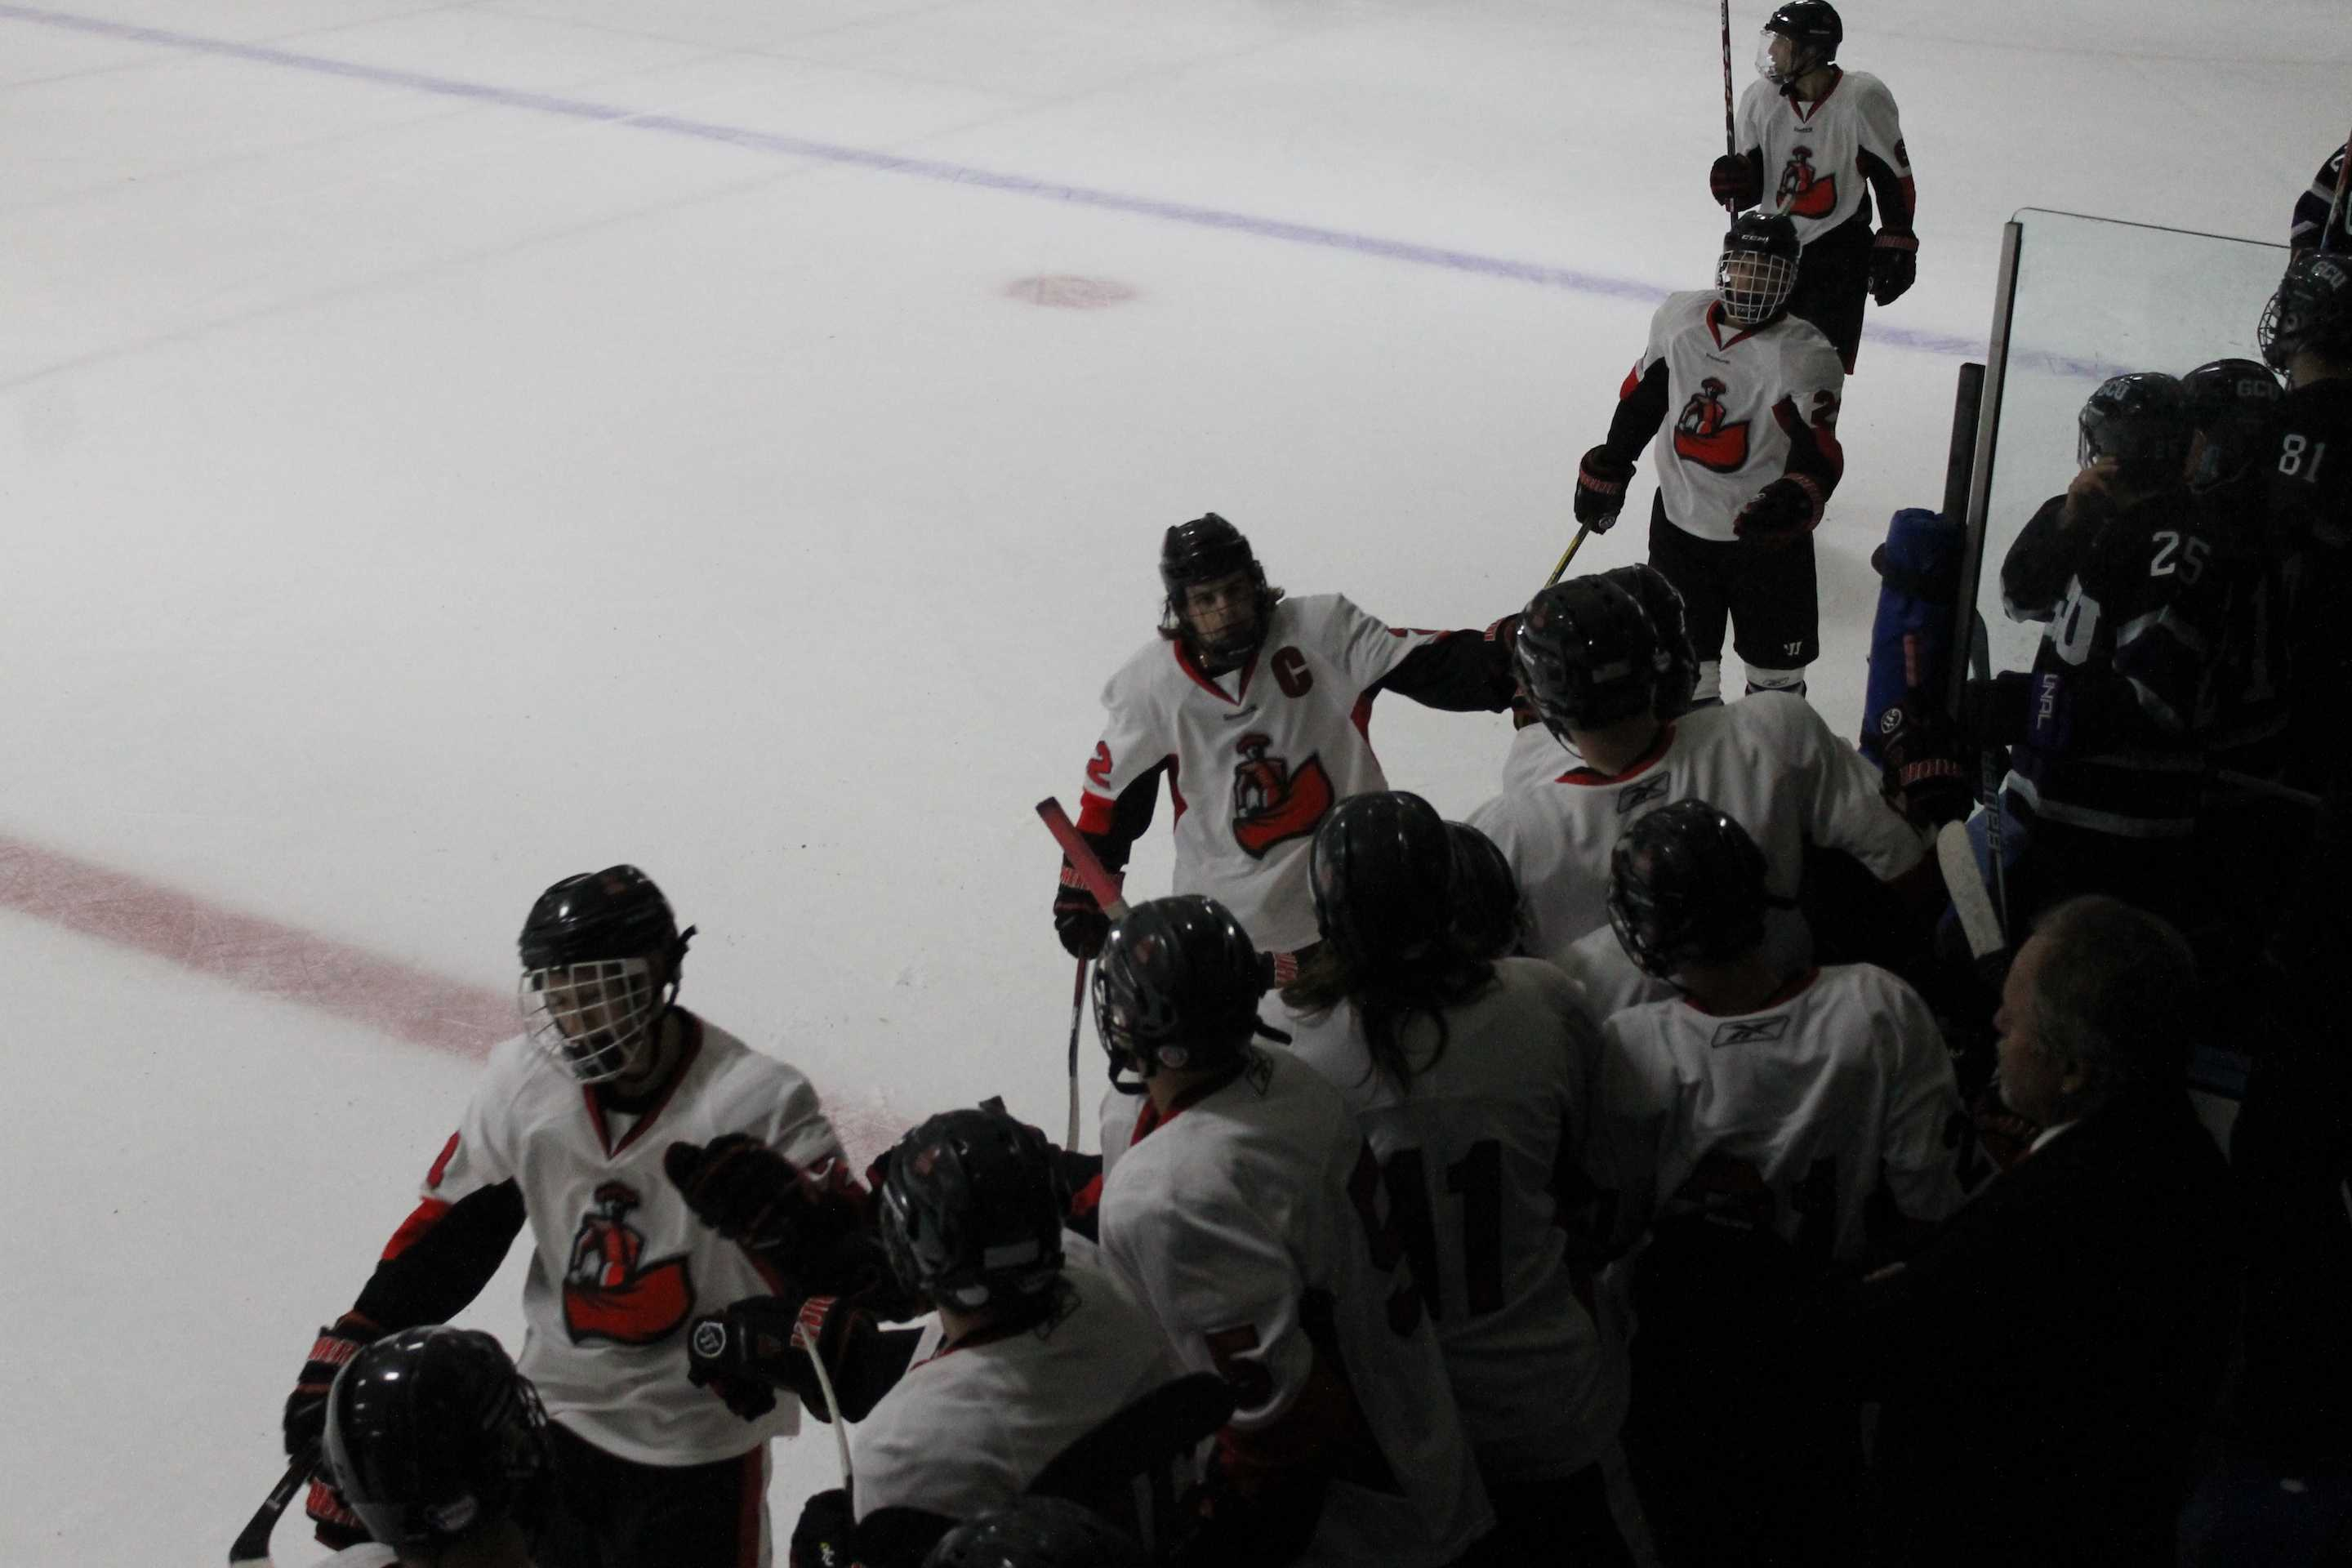 (12) Evan Wright, (22) Alex Reints, goal scorer, (25) Eli Berengut, and (6) John Michael Laurin receive praise from their team as this line got CSUN a 1-0 lead in the first against GCU Friday night at the Iceoplex in Simi Valley. (Solomon Ladvienka/The Sundial)